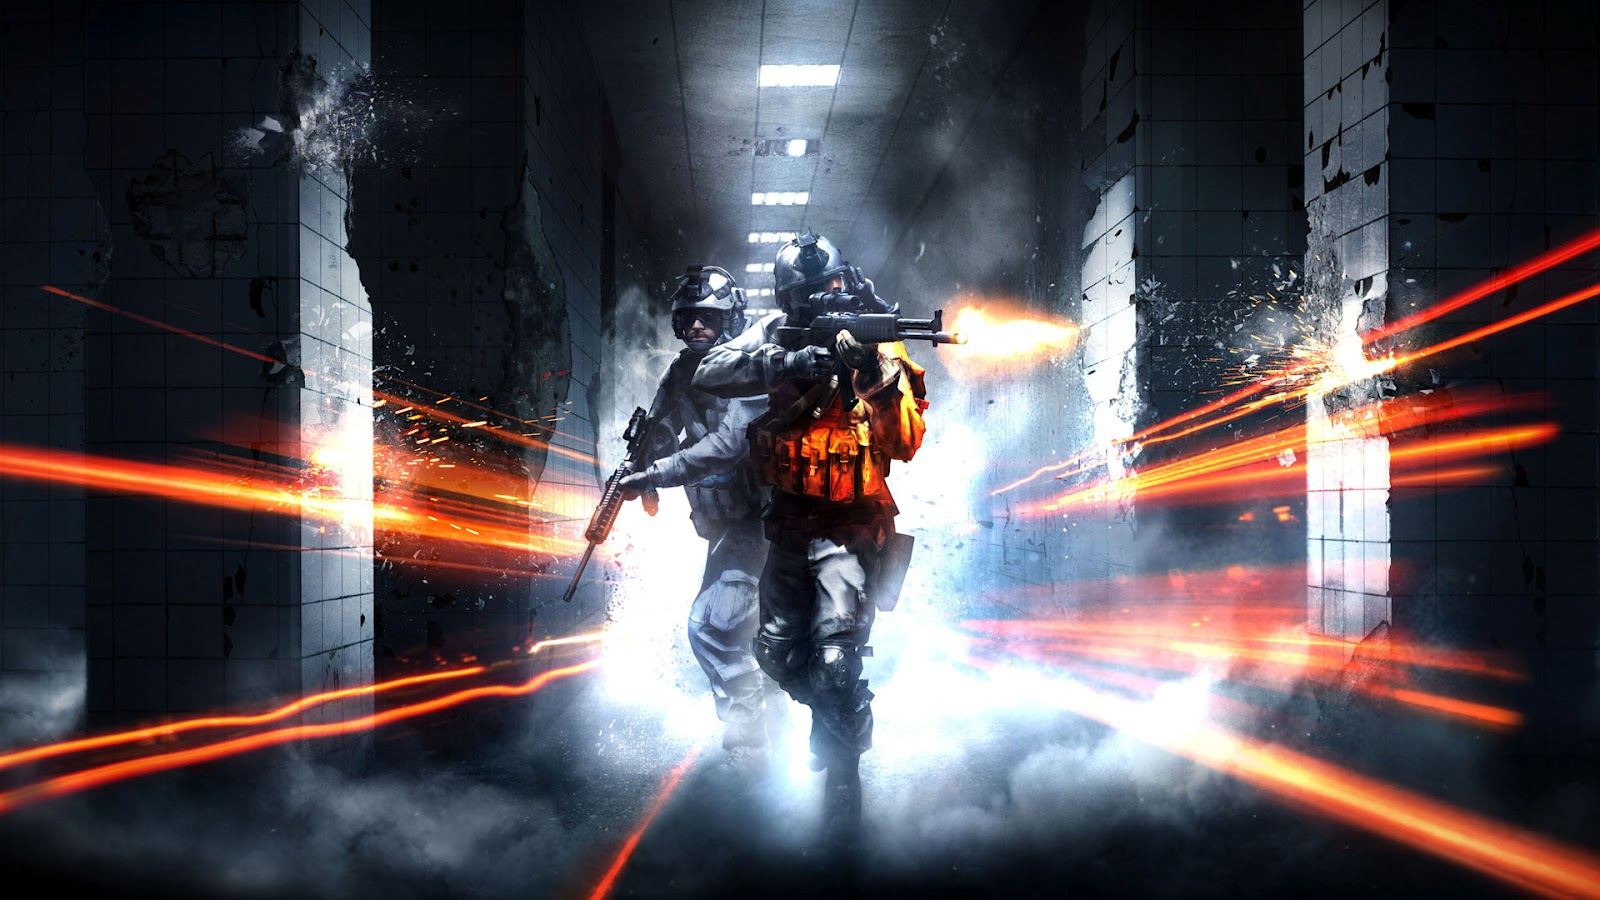 battlefield 3 pc wallpapers - photo #21